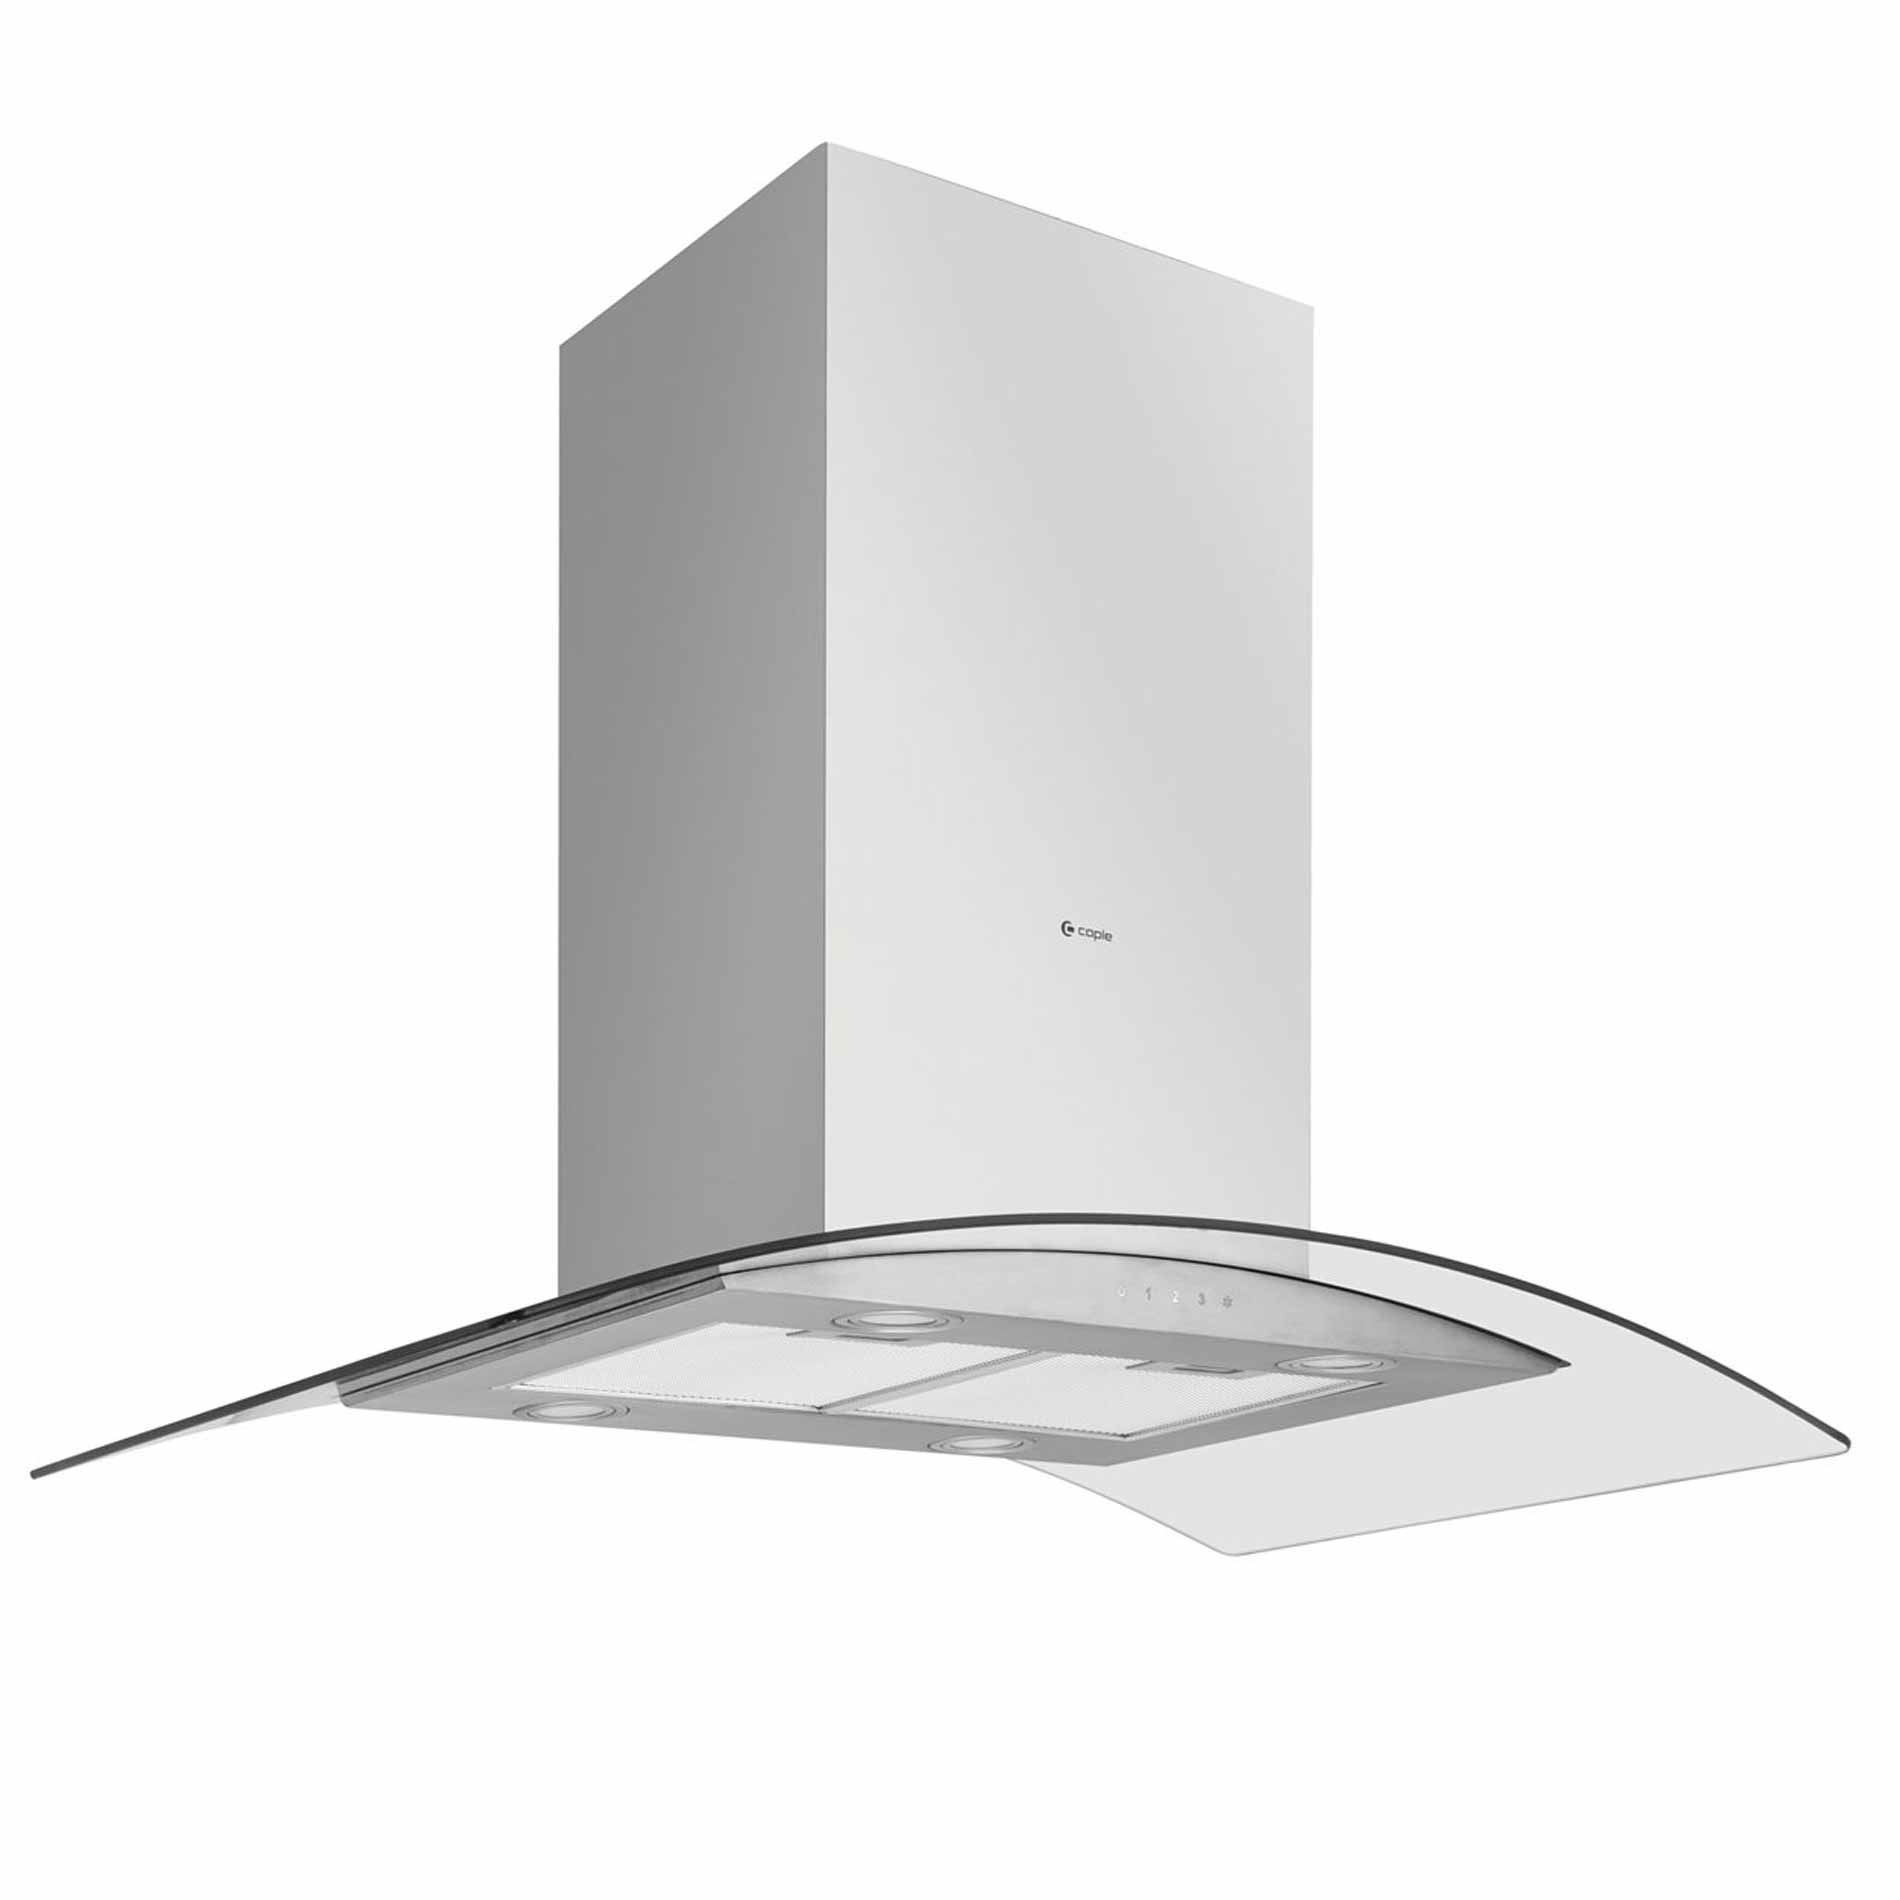 Picture of CGI921 Island Cooker Hood